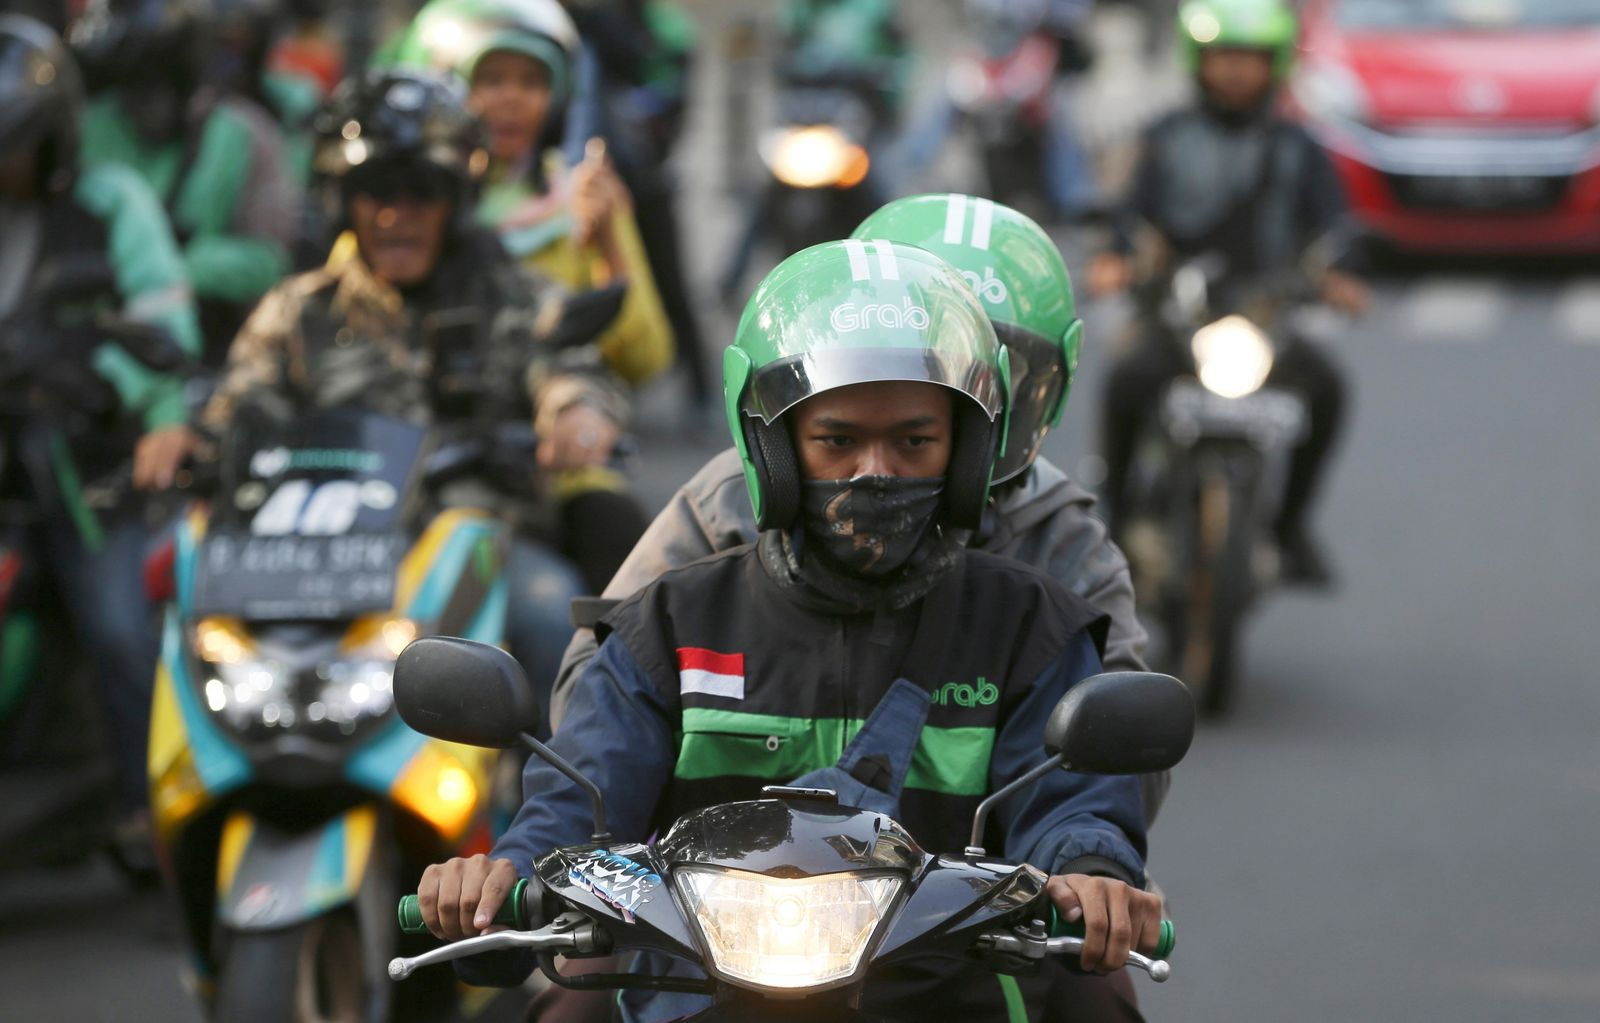 A Grab driver rides on his motorcycle in Jakarta, Indonesia, Monday, July 29, 2019. Japanese technology company Softbank and Southeast Asian ride hailing app Grab said Monday, July 29, 2019, they're investing $2 billion in Indonesia over the next five years. (AP Photo/Achmad Ibrahim)